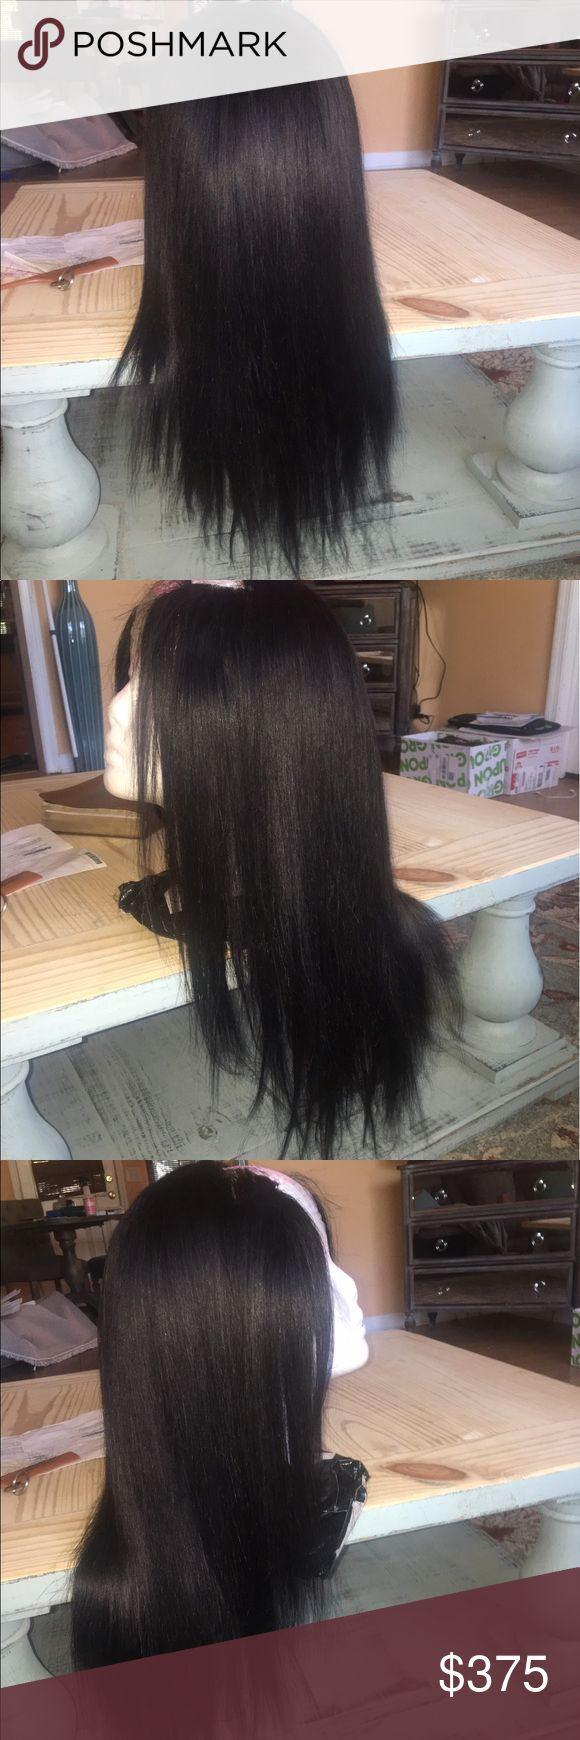 Virgin Malaysian U part wig 20 inches LOVE this wig but need the money. Cap size is medium. Originally purchased for just over 500. Hair color is 1b Accessories